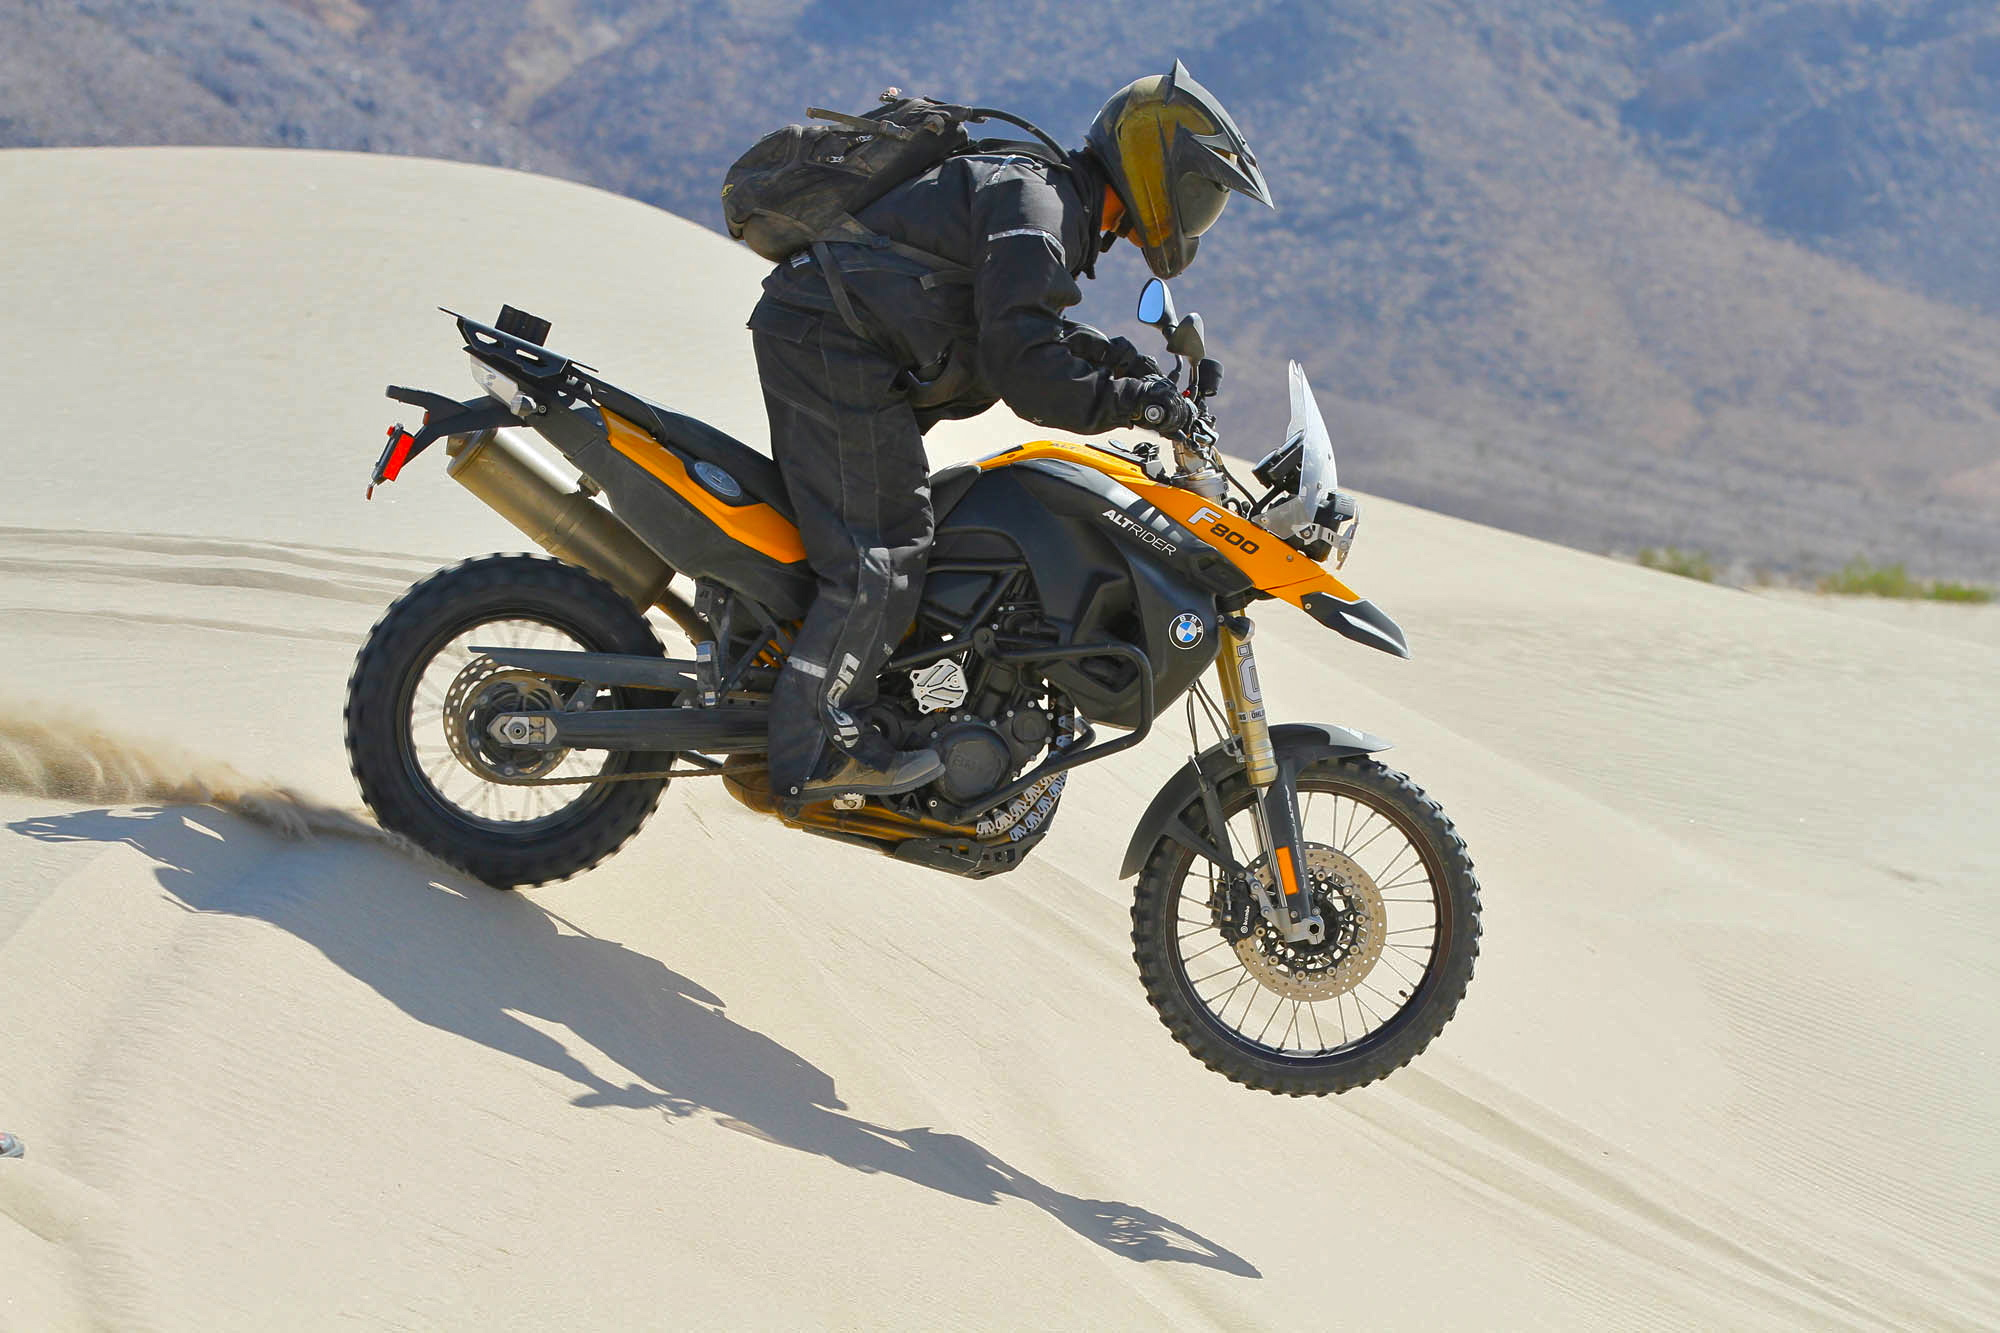 That's right! It's your own little Rally Raid experience but closer to home